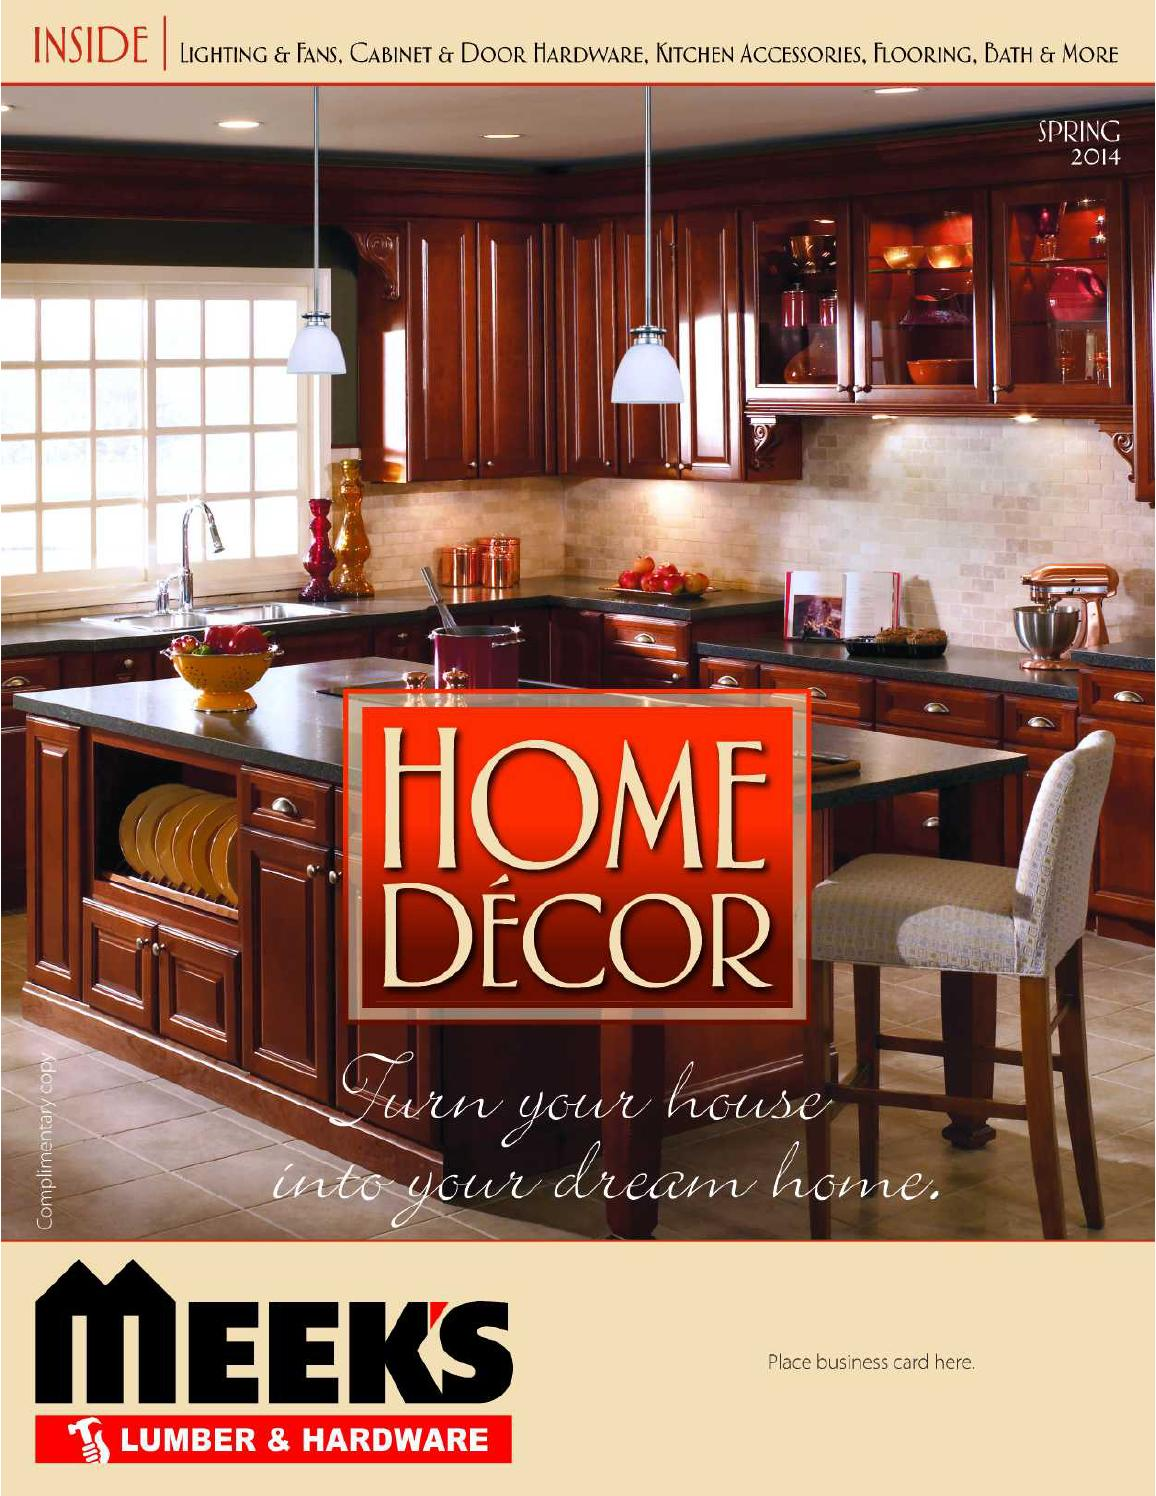 home d 233 cor catalog spring 2014 by meek s lumber home interior decor with red accents home decor catalogs